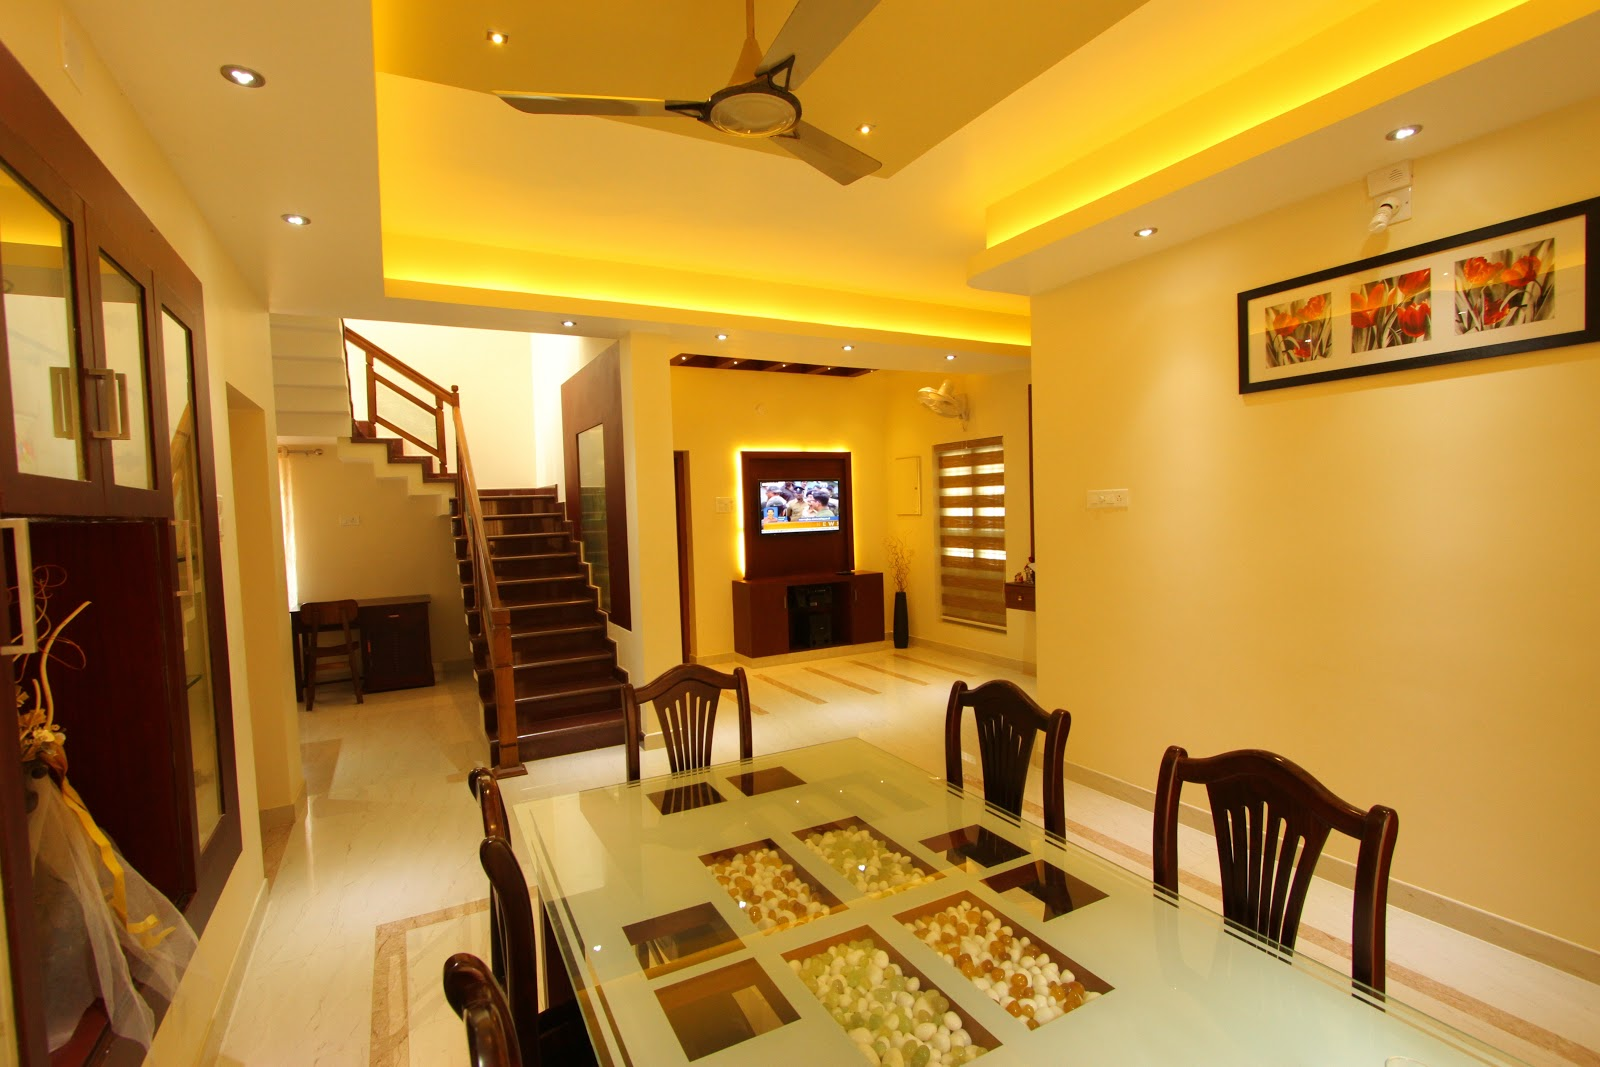 Shilpakala interiors award winning home interior design by shilpakala interiors - Housing interiors ...